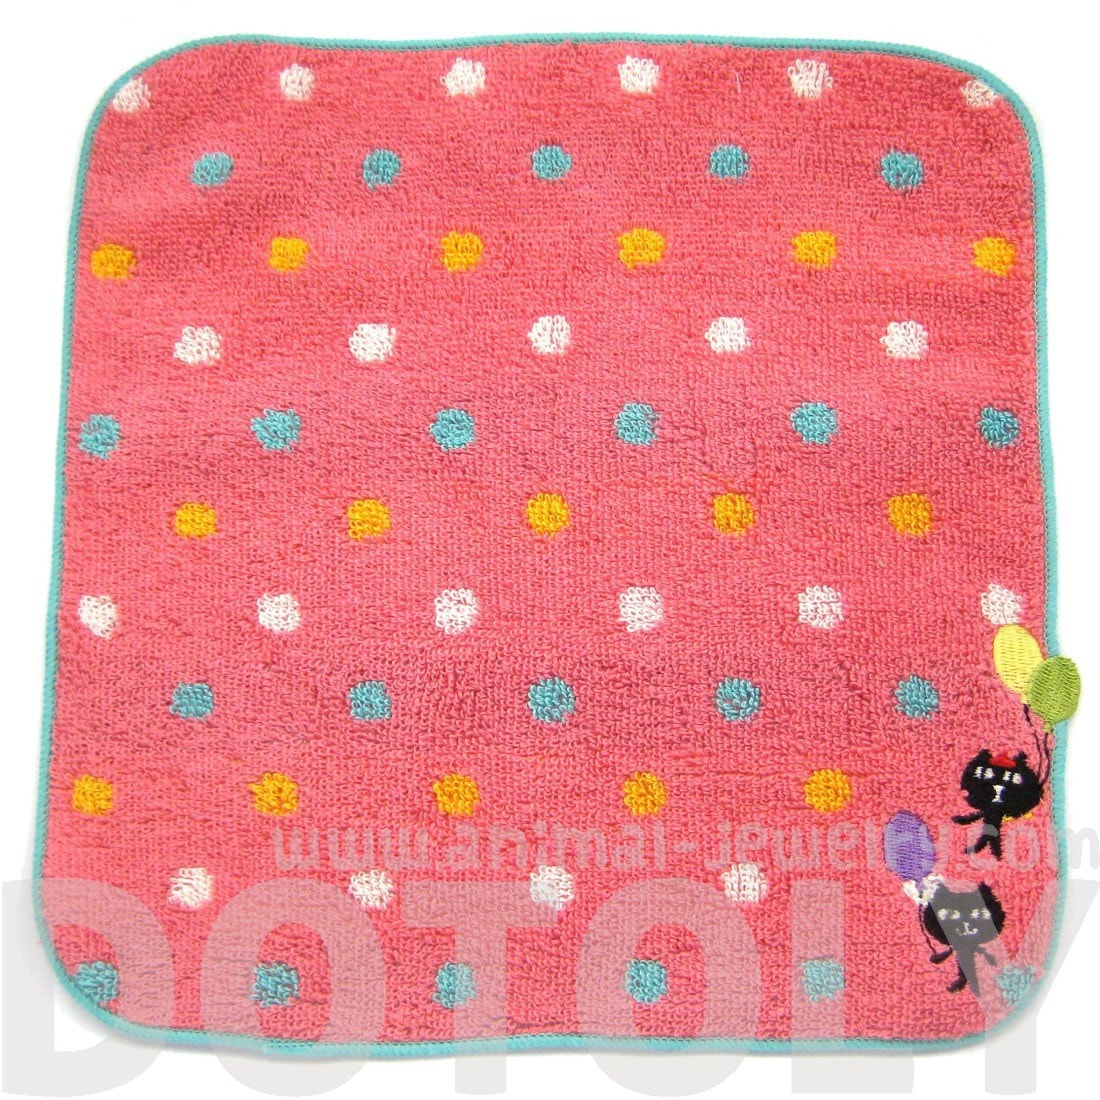 Kitty Cat and Balloon Embroidered Polka Dotted Face Towel in Dark Pink